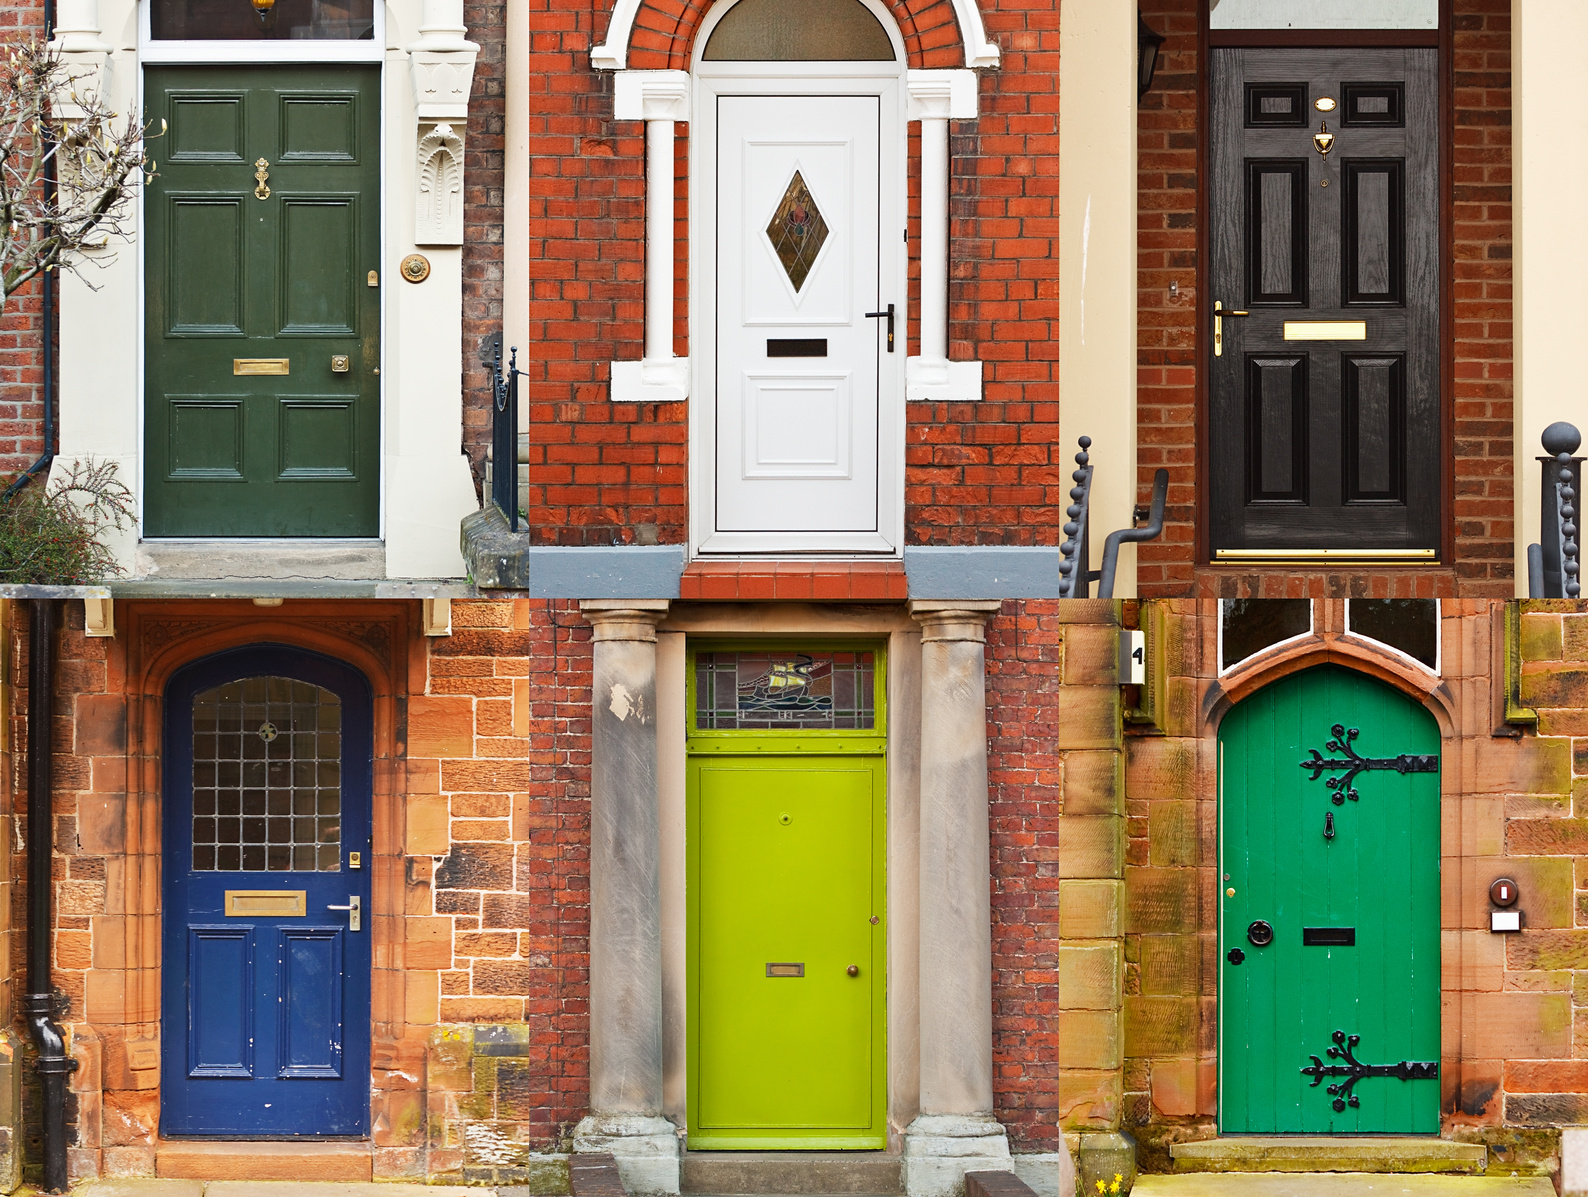 A selection of residential front doors good for estate agents and symbolising opening new doors